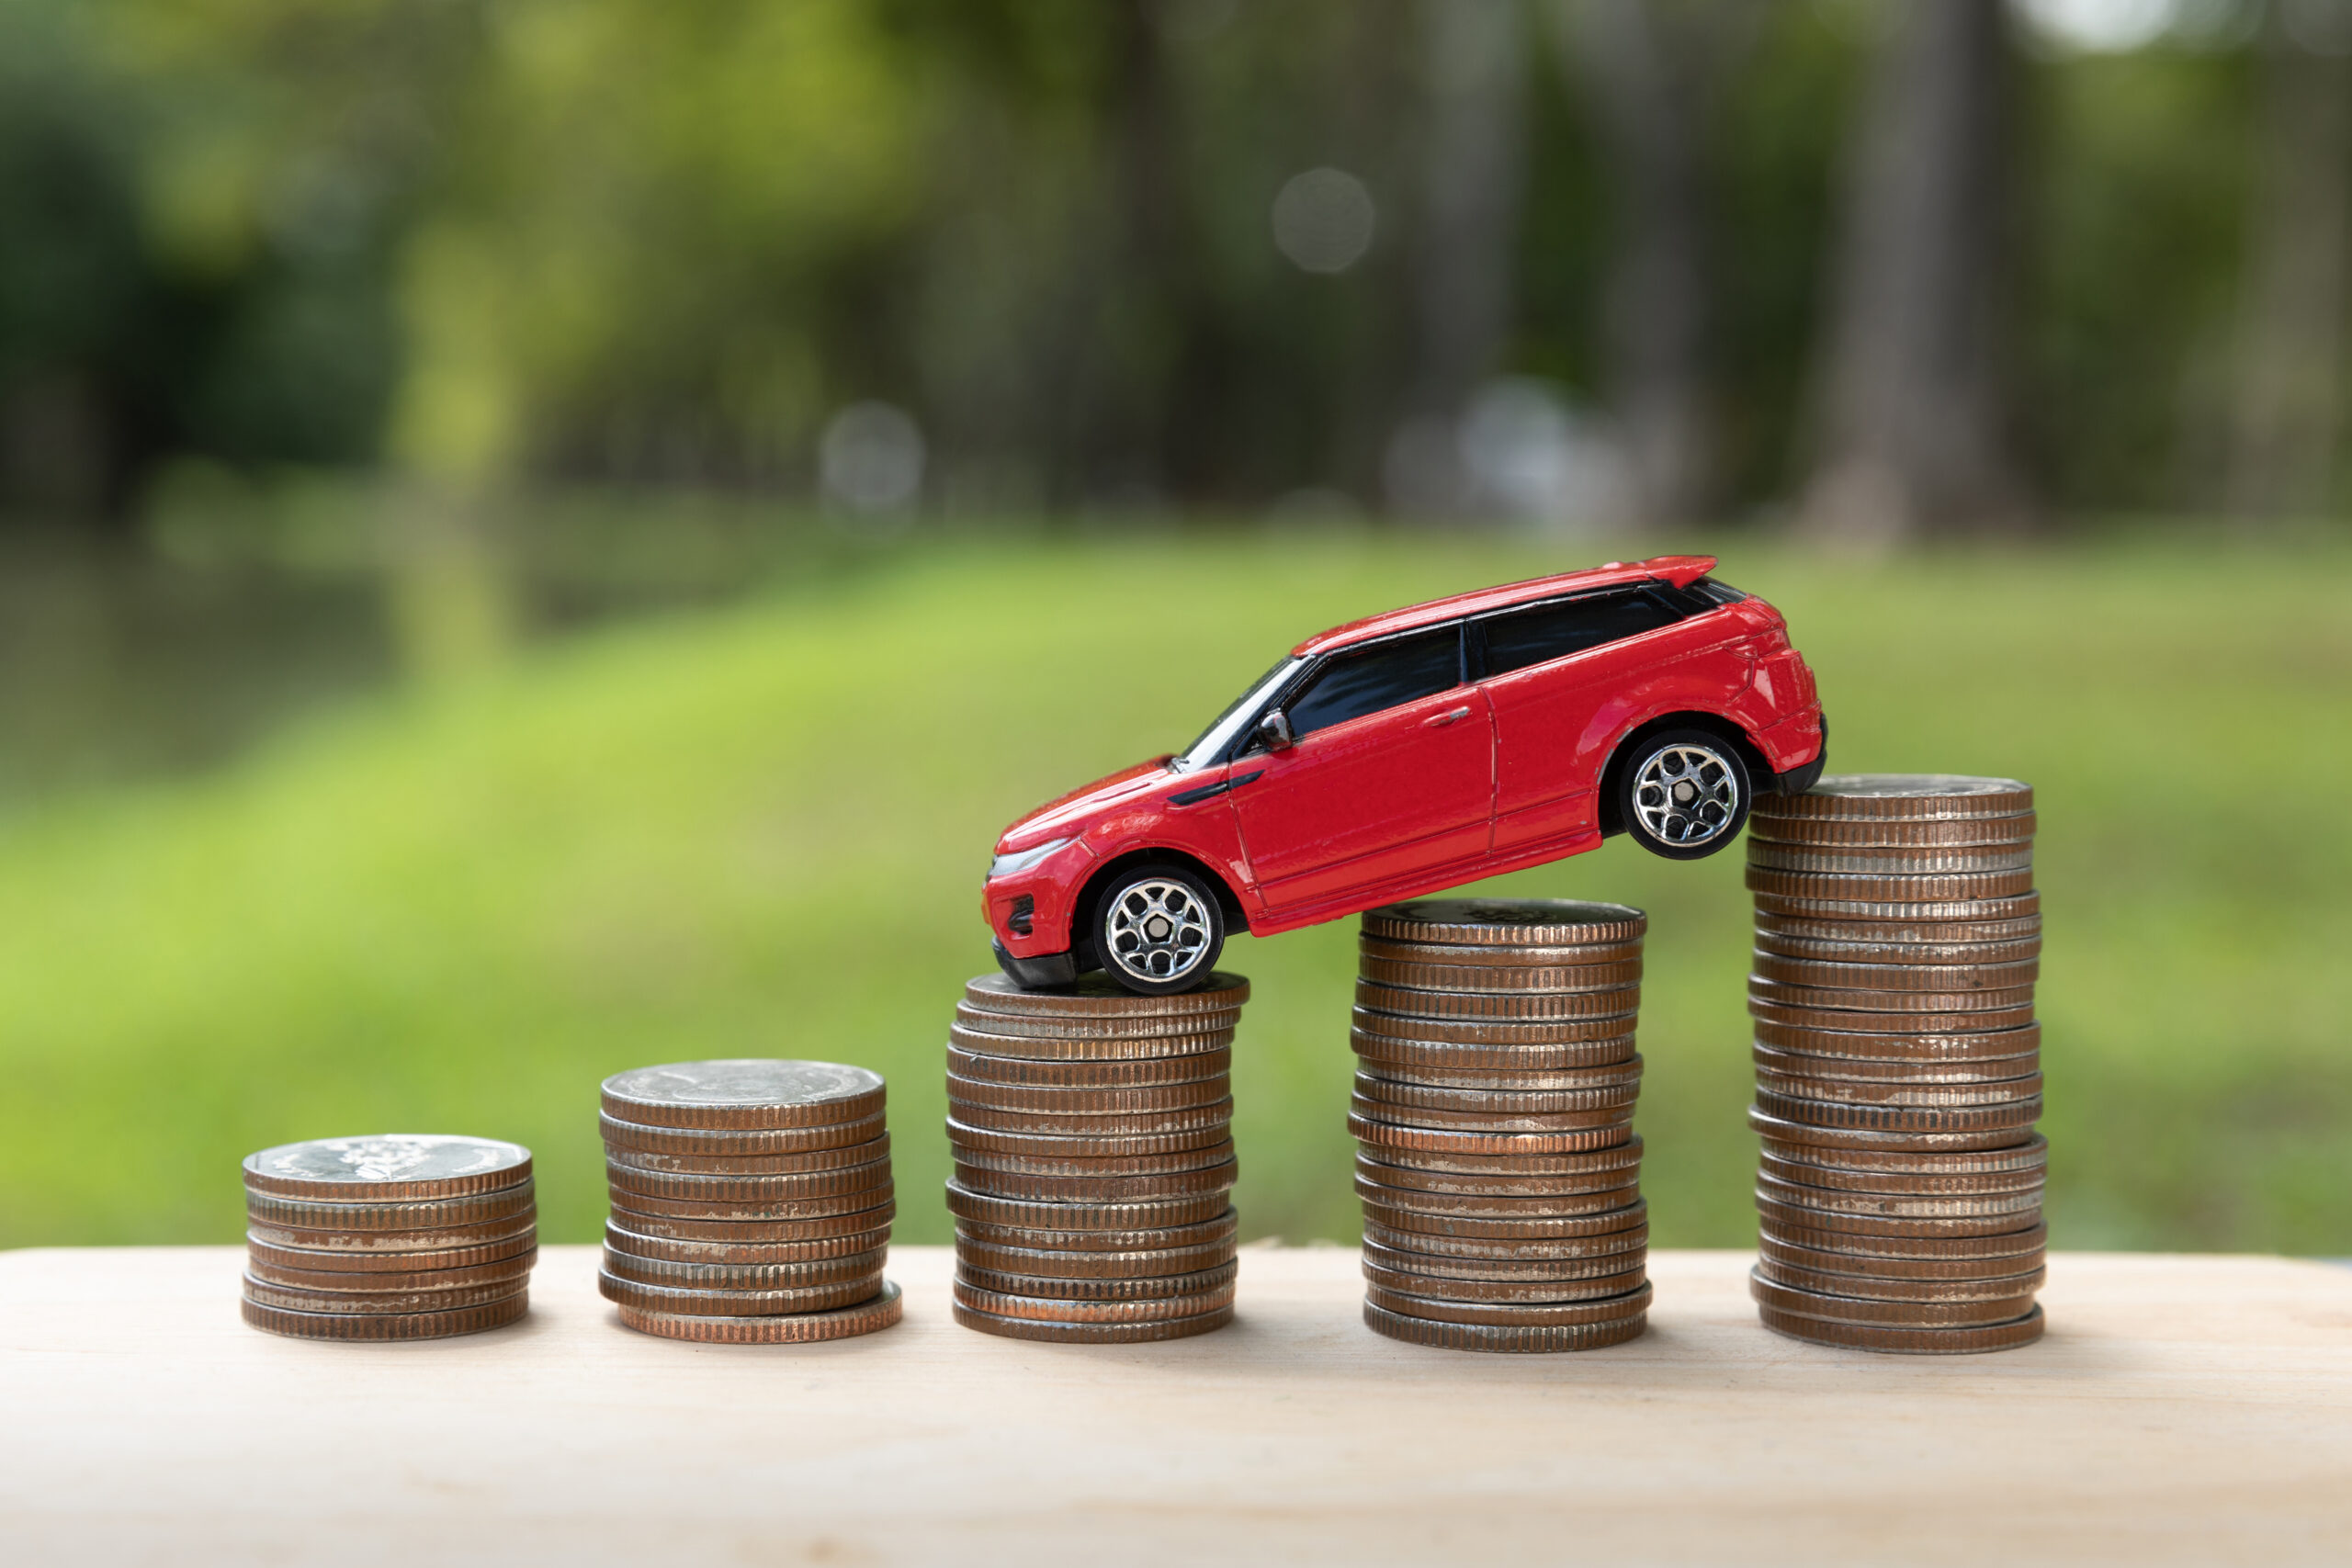 cars for cash adelaide, CASH FOR CAR CANBERRA- A CUSTOMER-FRIENDLY CAR REMOVAL SERVICE PROVIDER